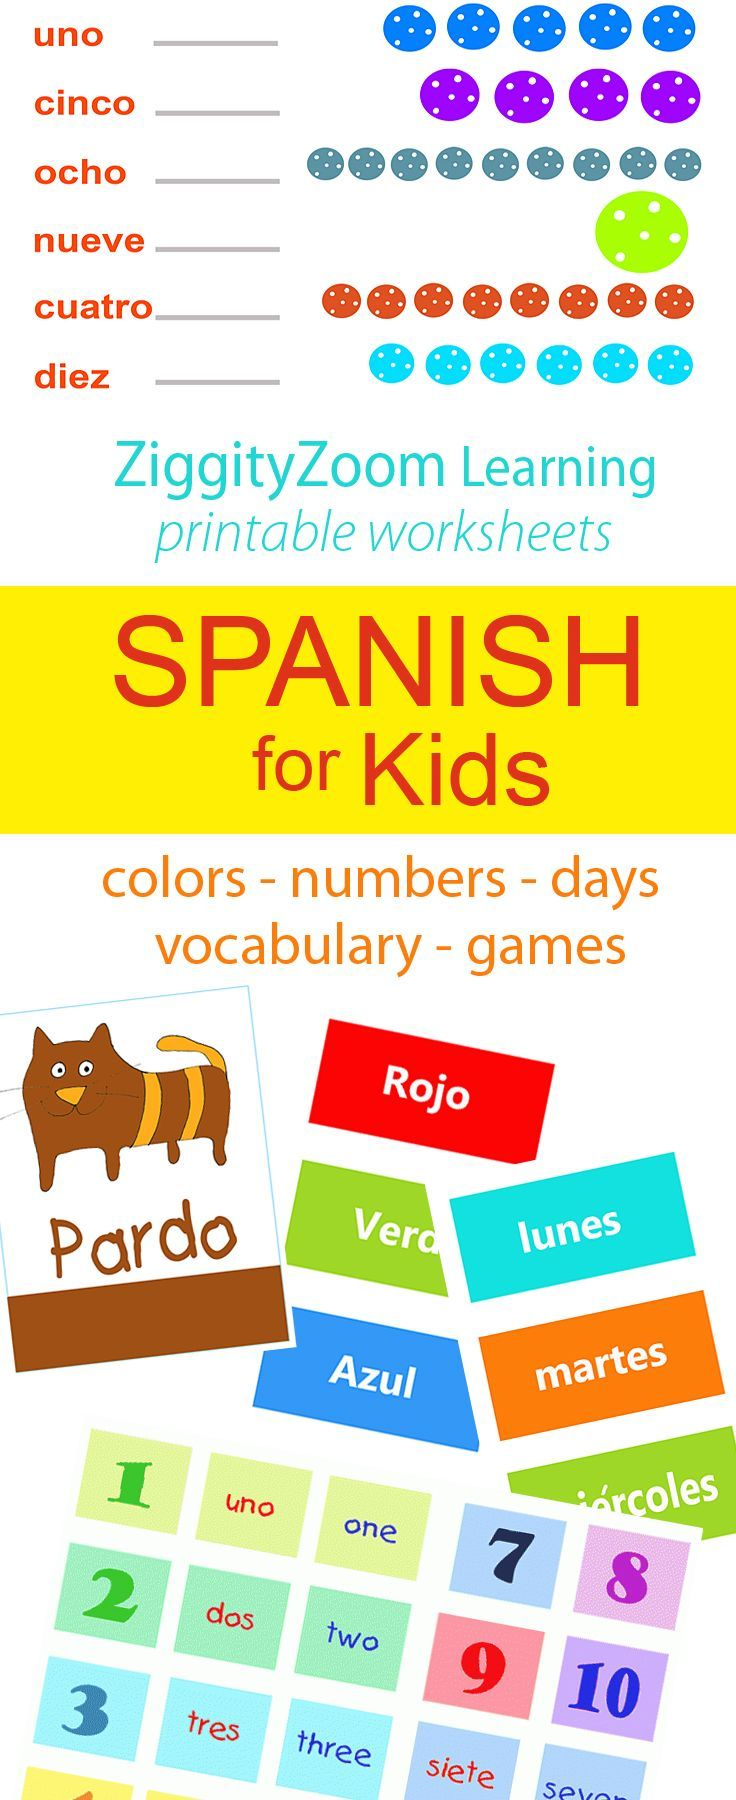 Worksheets Free Printable Spanish Worksheets For Beginners 971 best spanish lessons images on pinterest learning free printable worksheets for kids lots of beginner printables or english